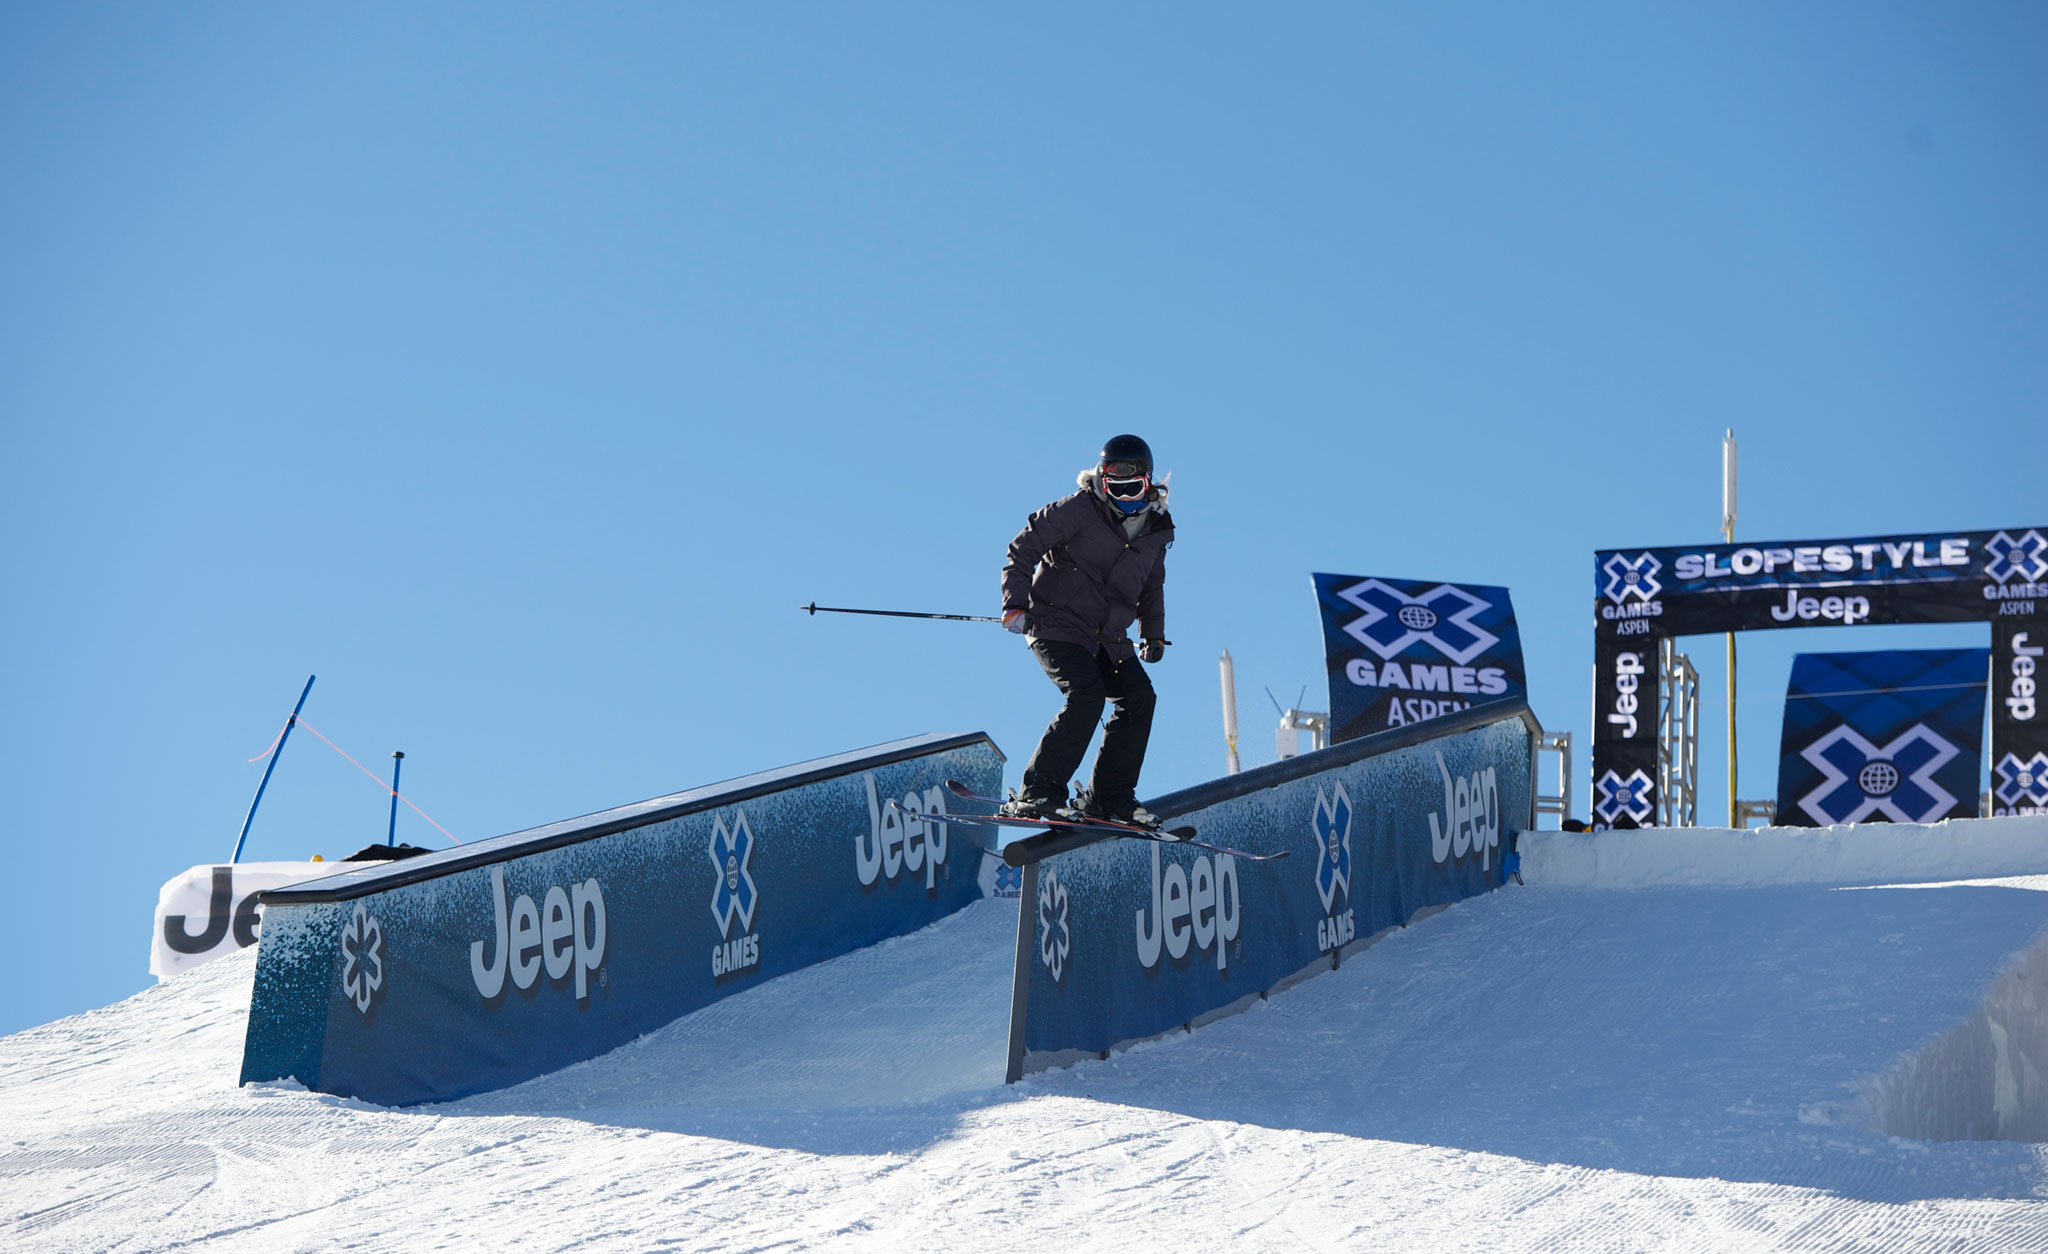 Rose Battersby during practice at X Games Aspen, just before getting injured.